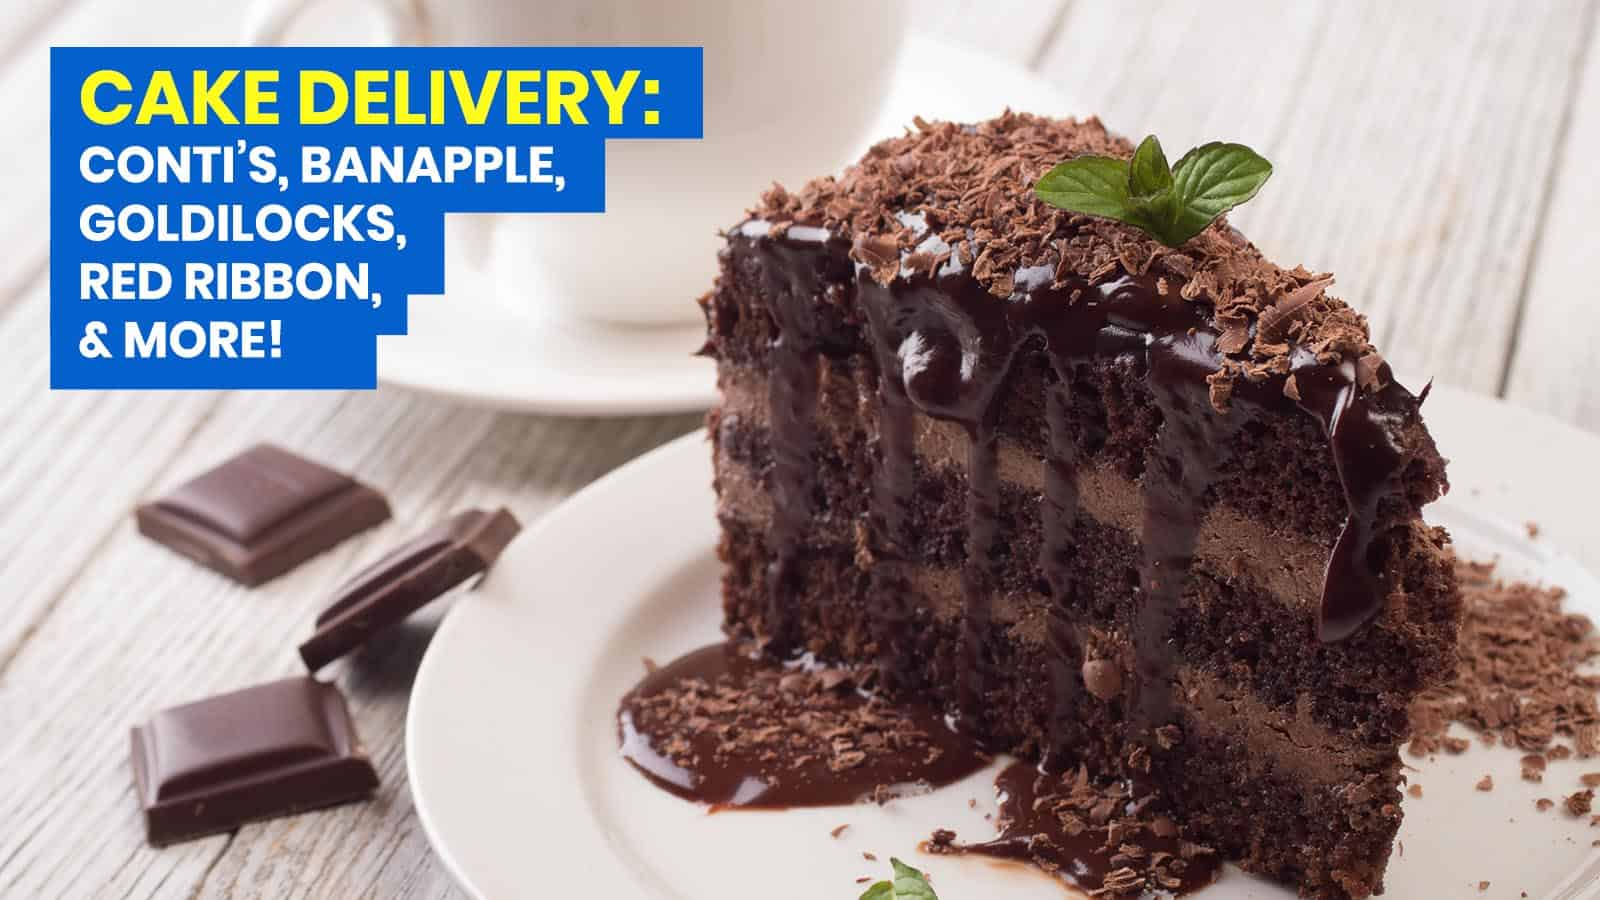 CAKE DELIVERY: List of Open Branches of Conti's, Goldilocks, Red Ribbon, Banapple & More!